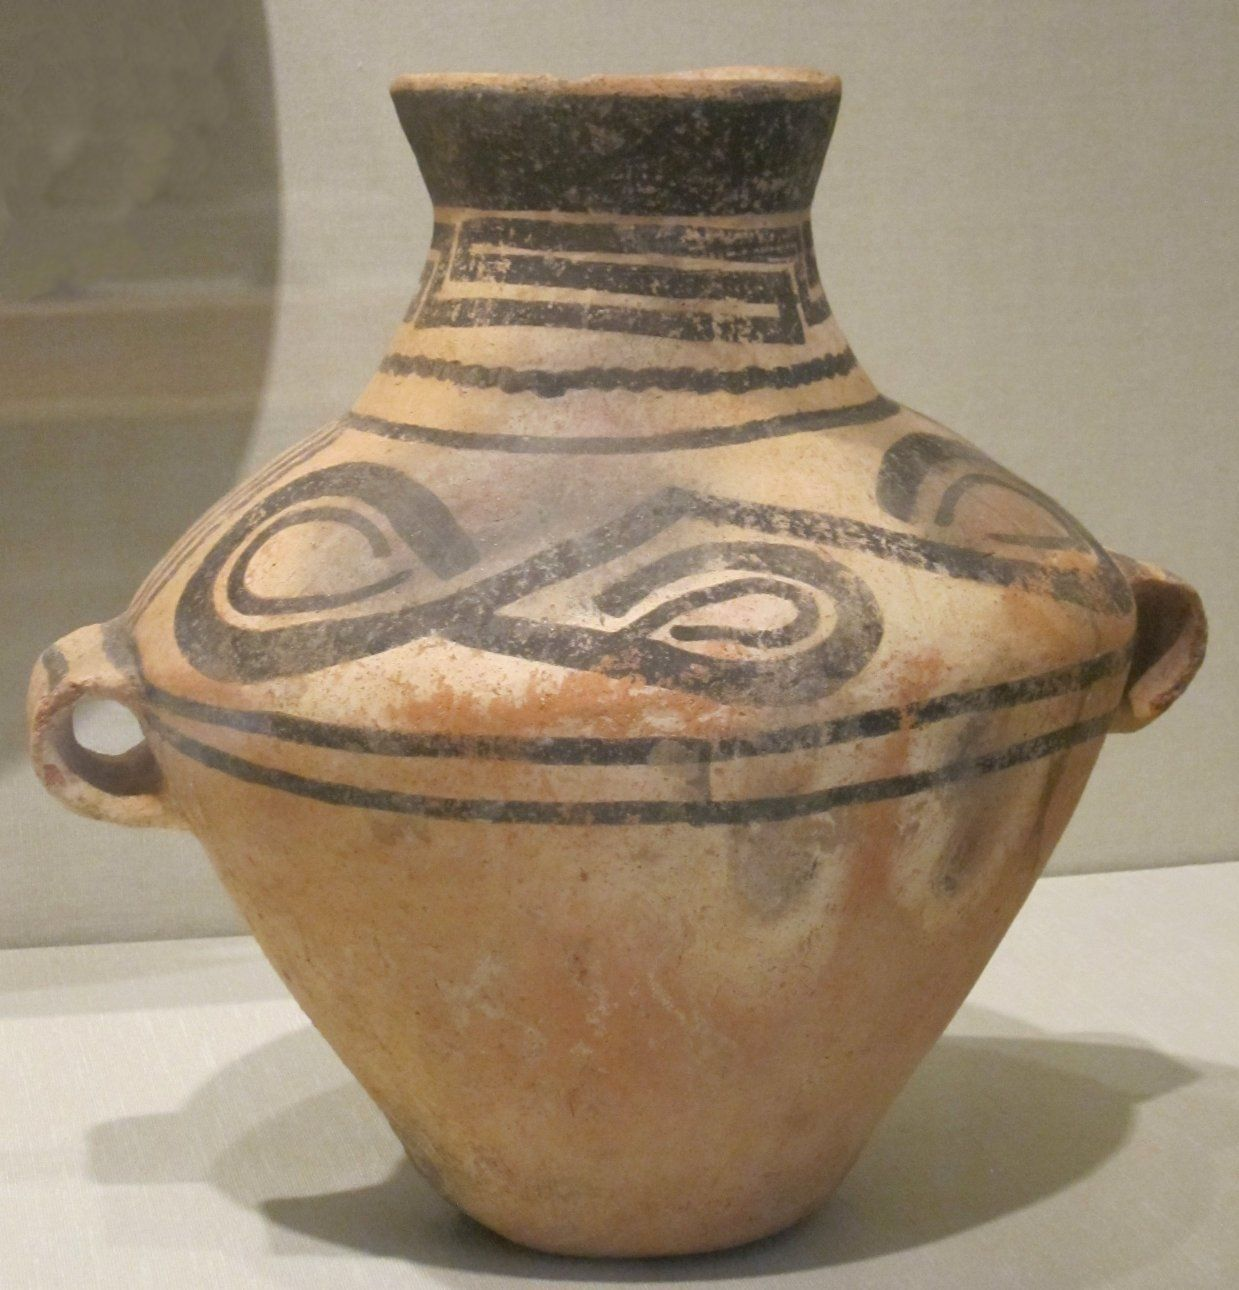 Chinese jar neolithic period c 1000 bce painted earthenware chinese jar neolithic period c 1000 bce painted earthenware reviewsmspy